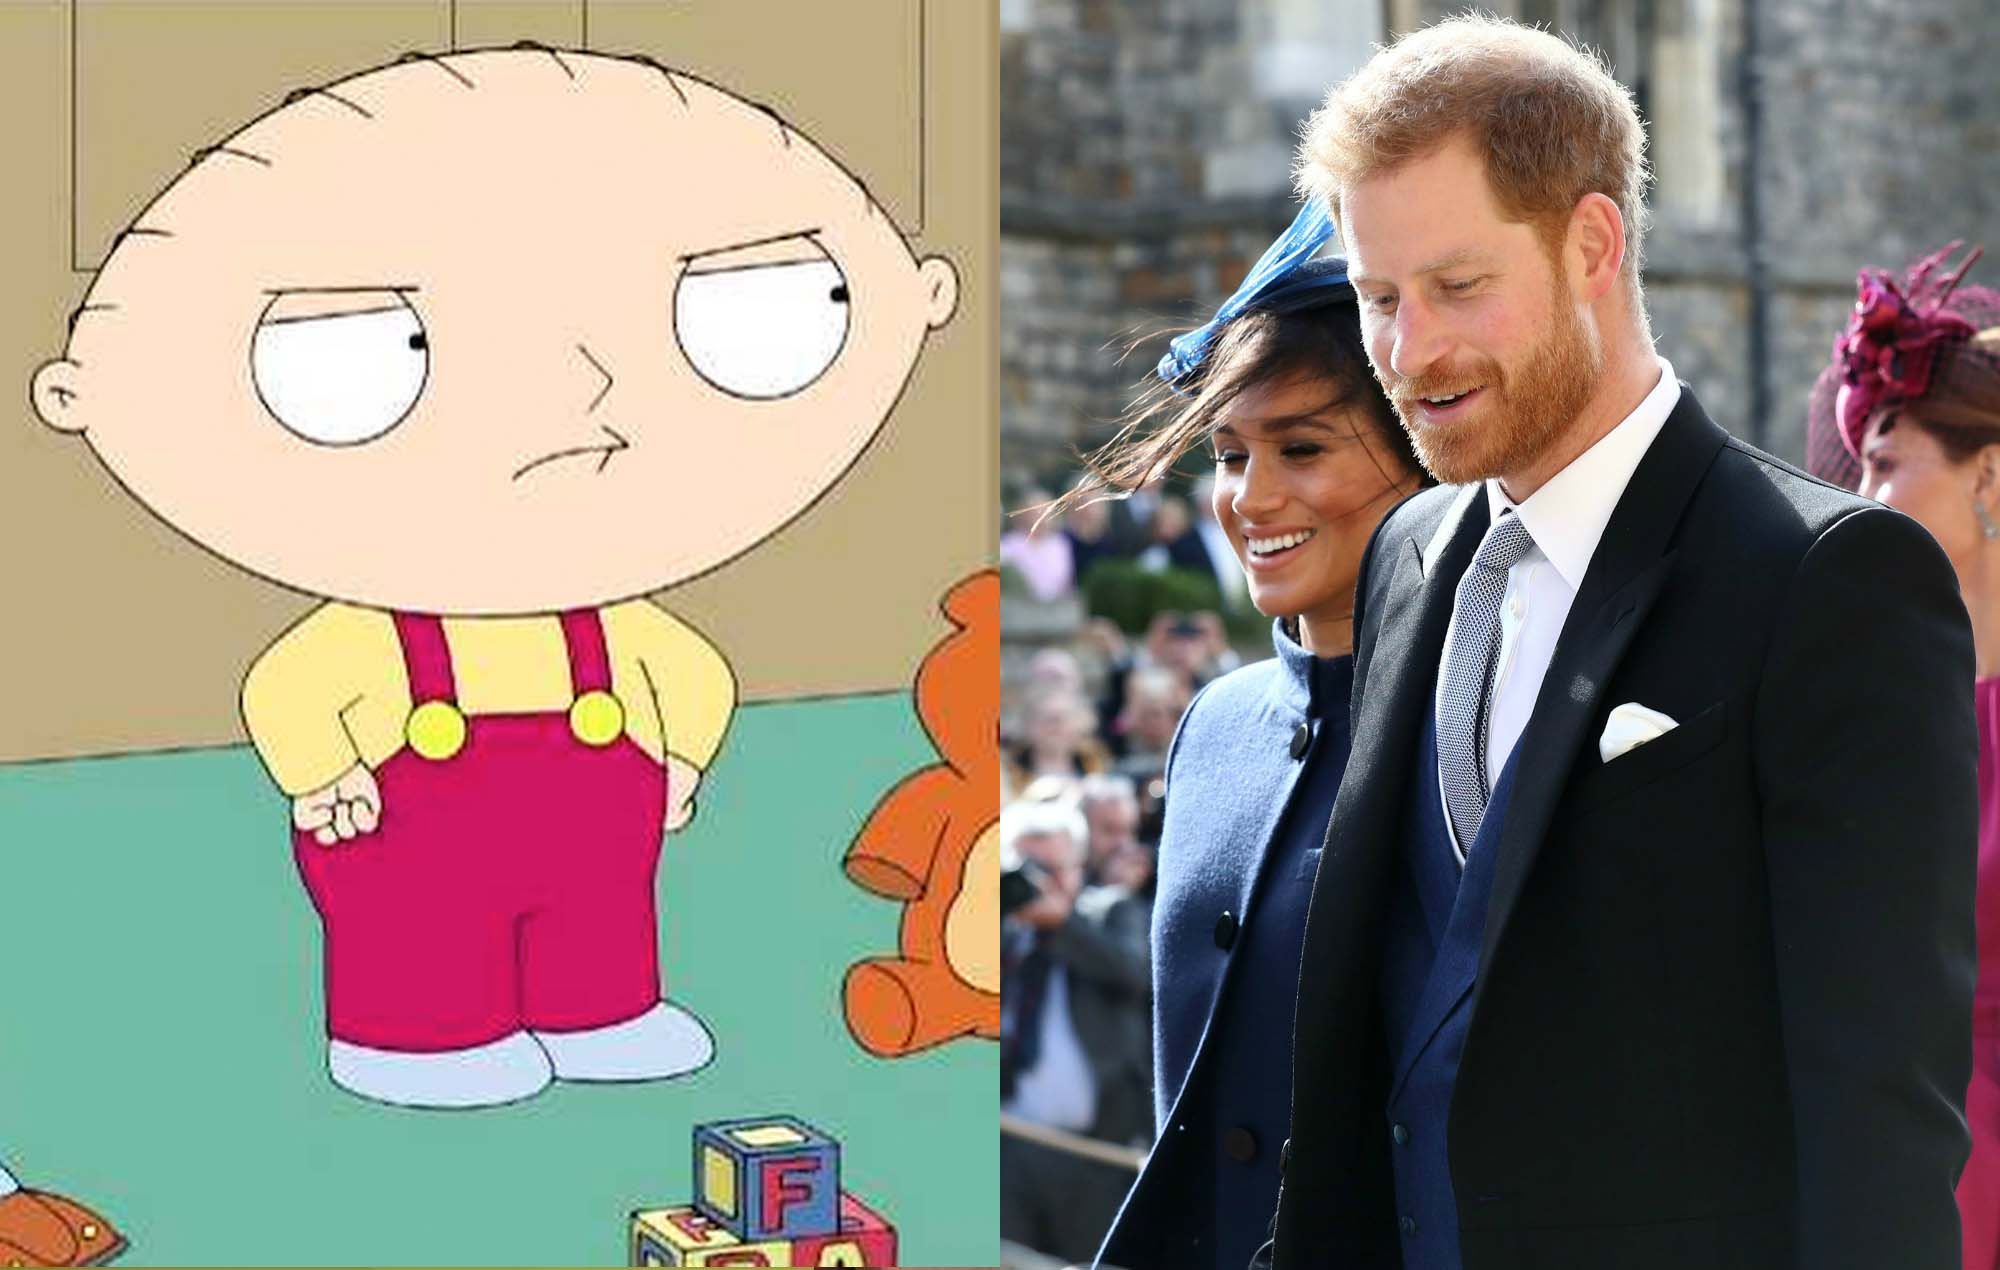 'The Prince': 'Family Guy' creator to make Royal Family spoof series